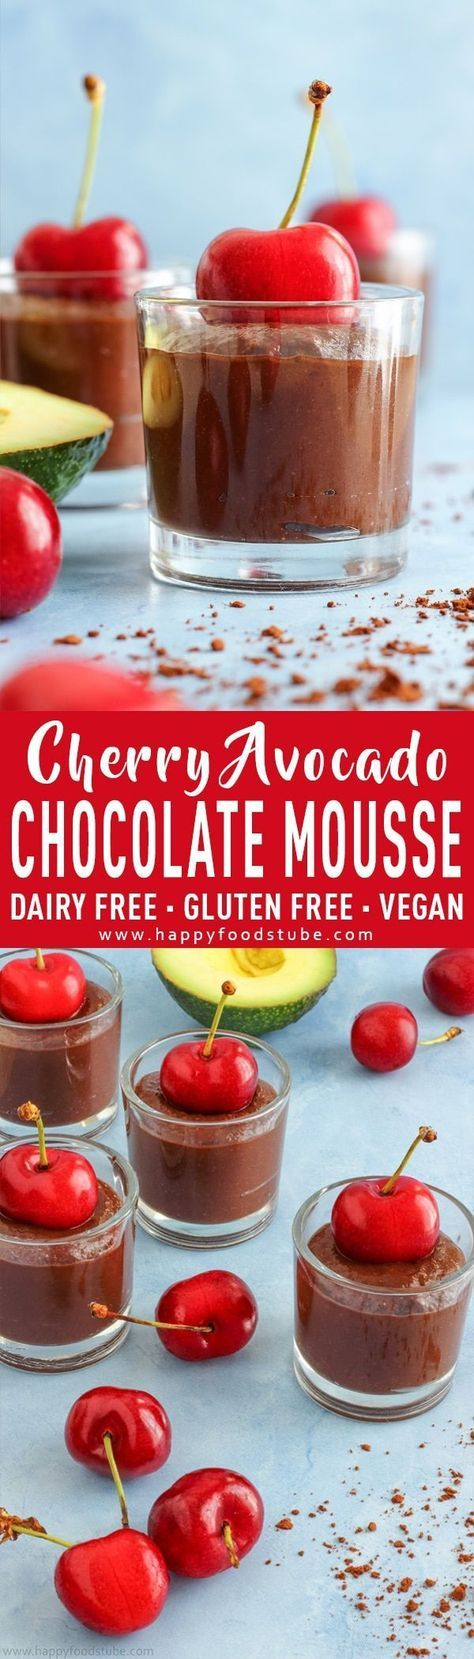 Cherry Avocado Chocolate Mousse is great all-natural sugar dessert. Imagine rich chocolate-y flavor, creamy avocado texture and sweetness from cherries and dates. This avocado chocolate mousse recipe is also dairy-free, gluten free and vegan via @happyfoo